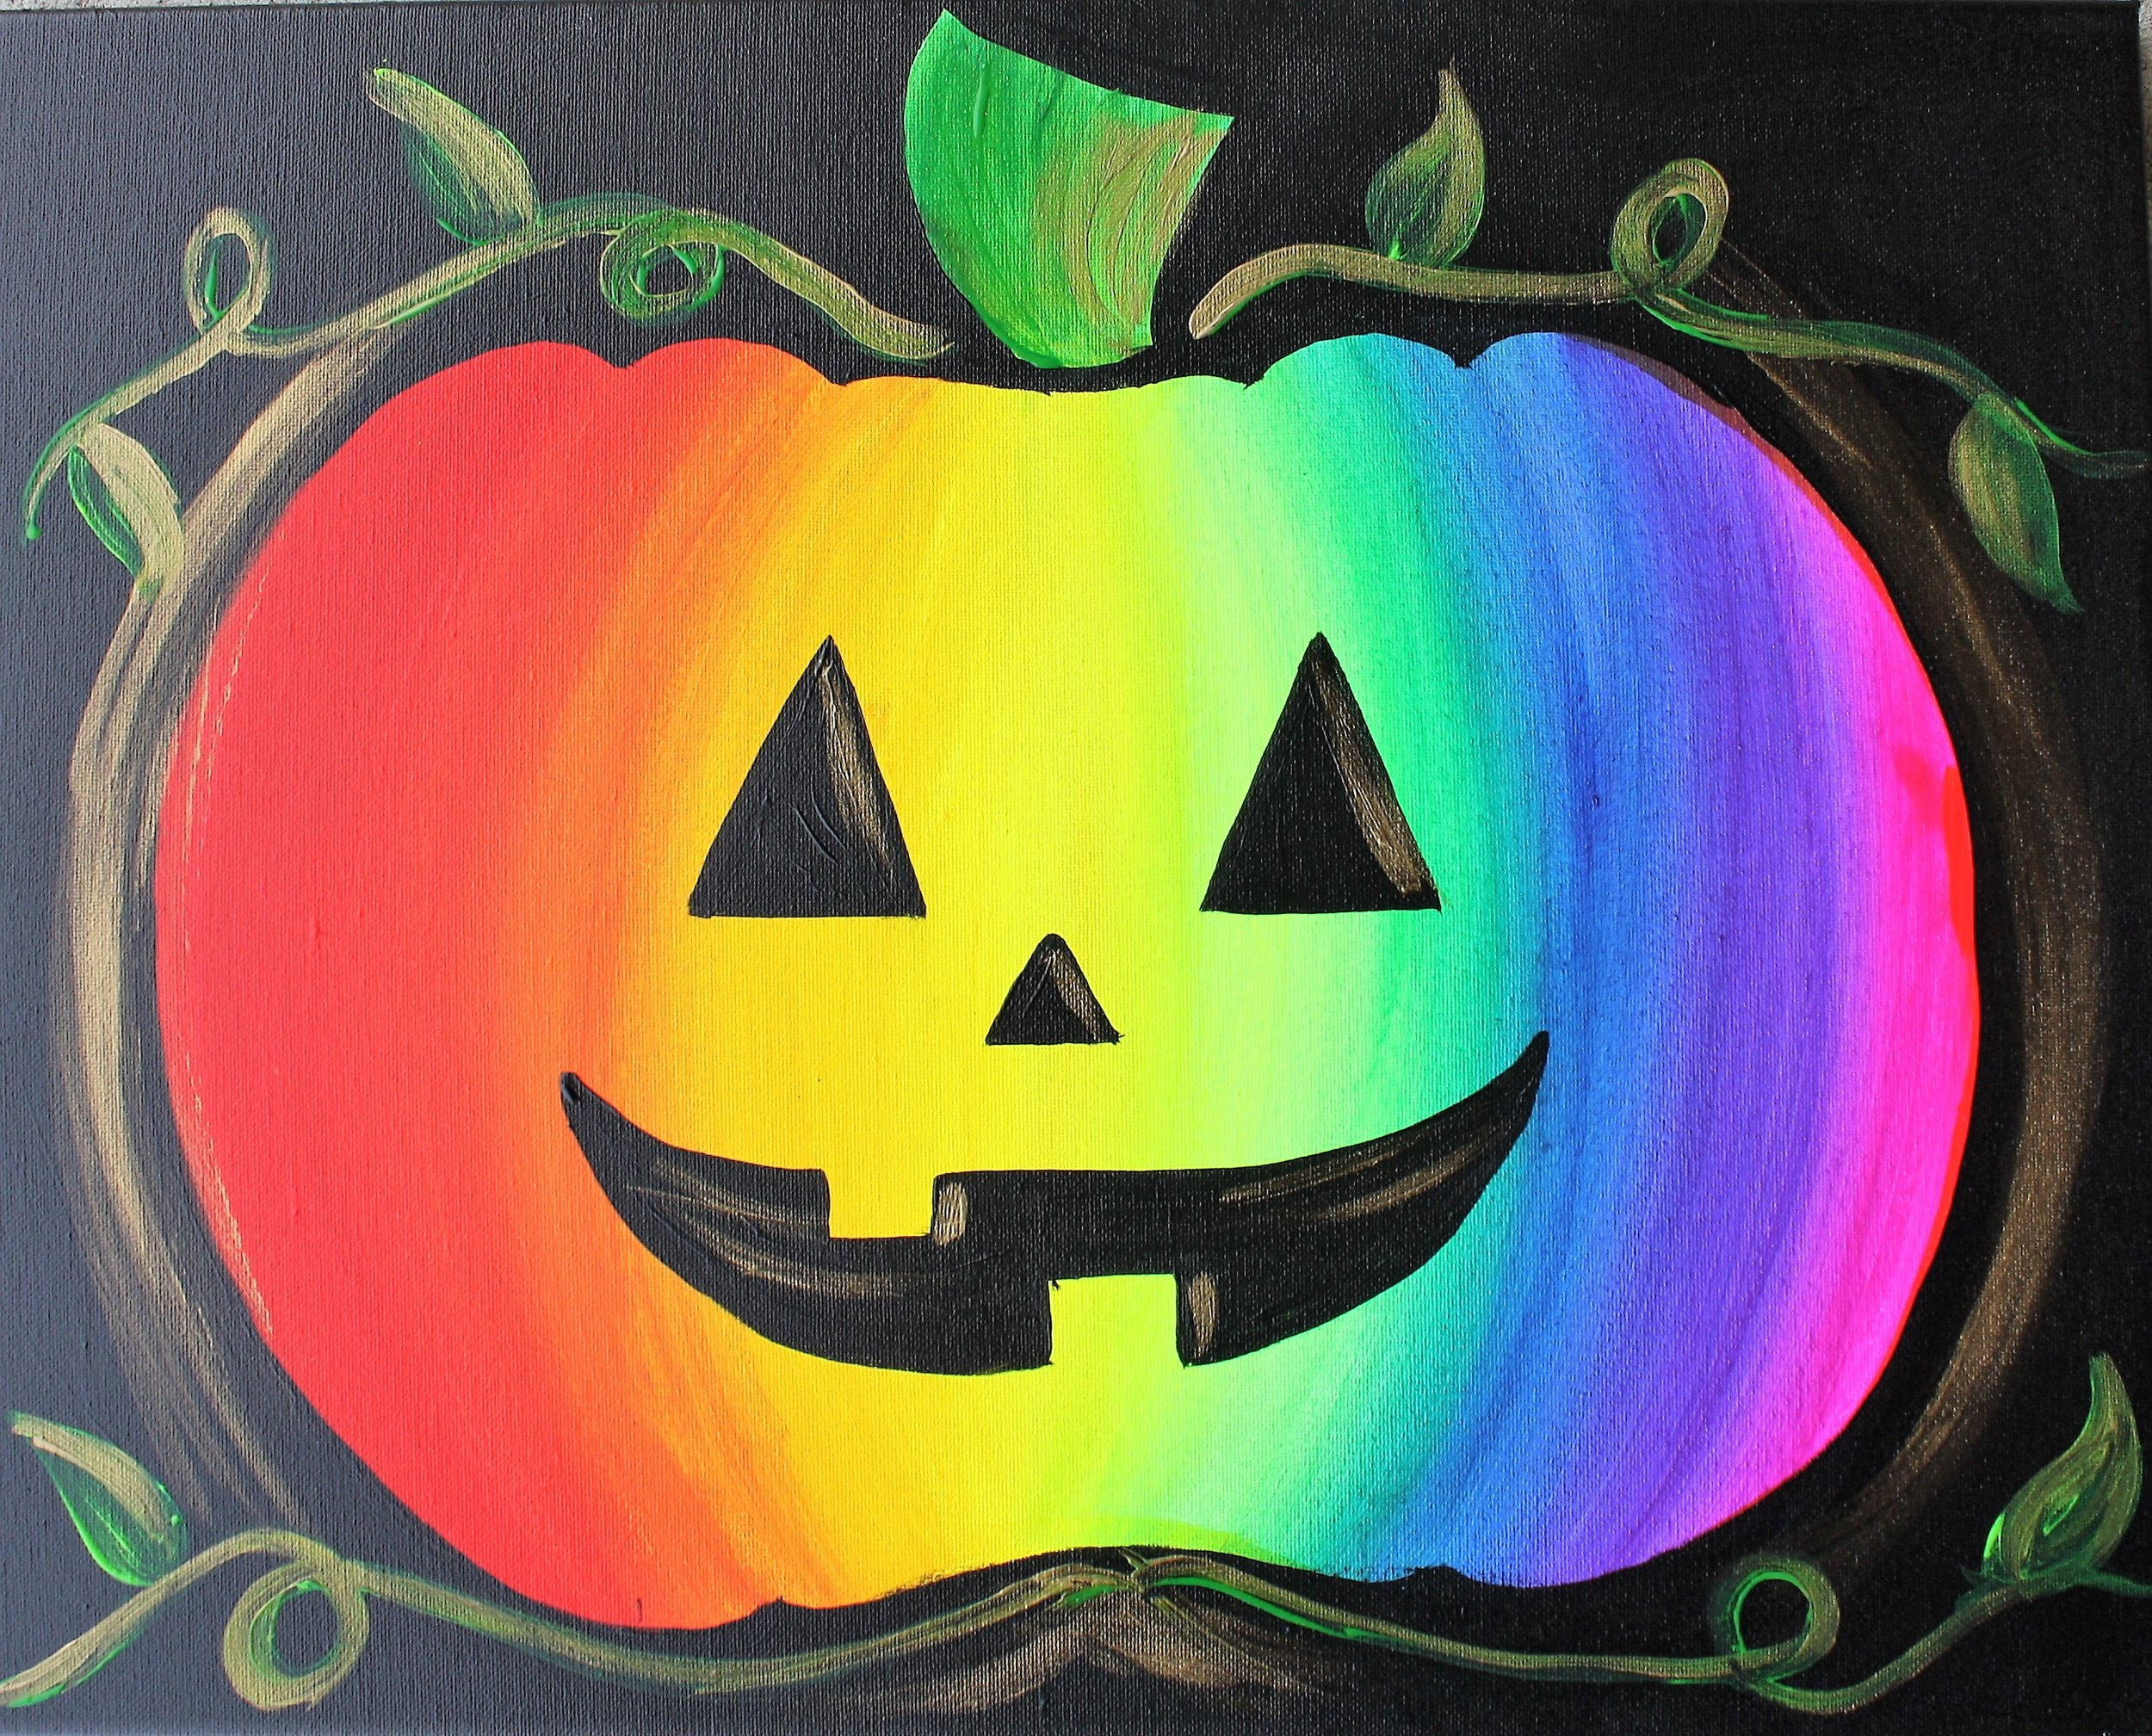 Rain-bow Jack-o-lantern - Ages 5-10 years old@1:00-2:30pm